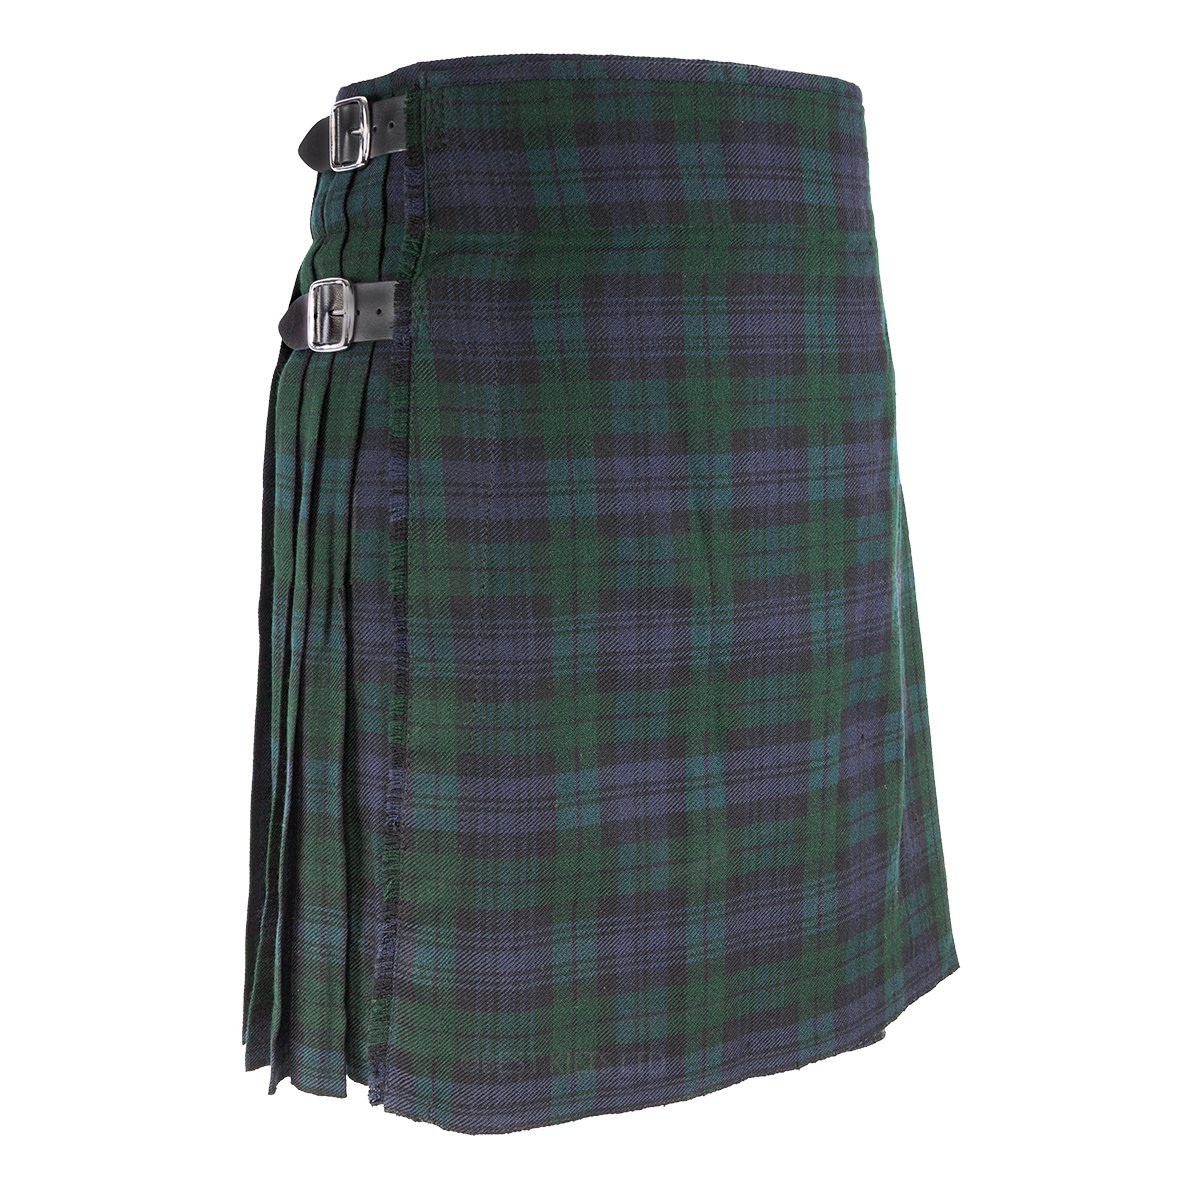 "Best Kilts Men's Traditional Scottish 5 Yard Black Watch Tartan Kilt 38""-40"""